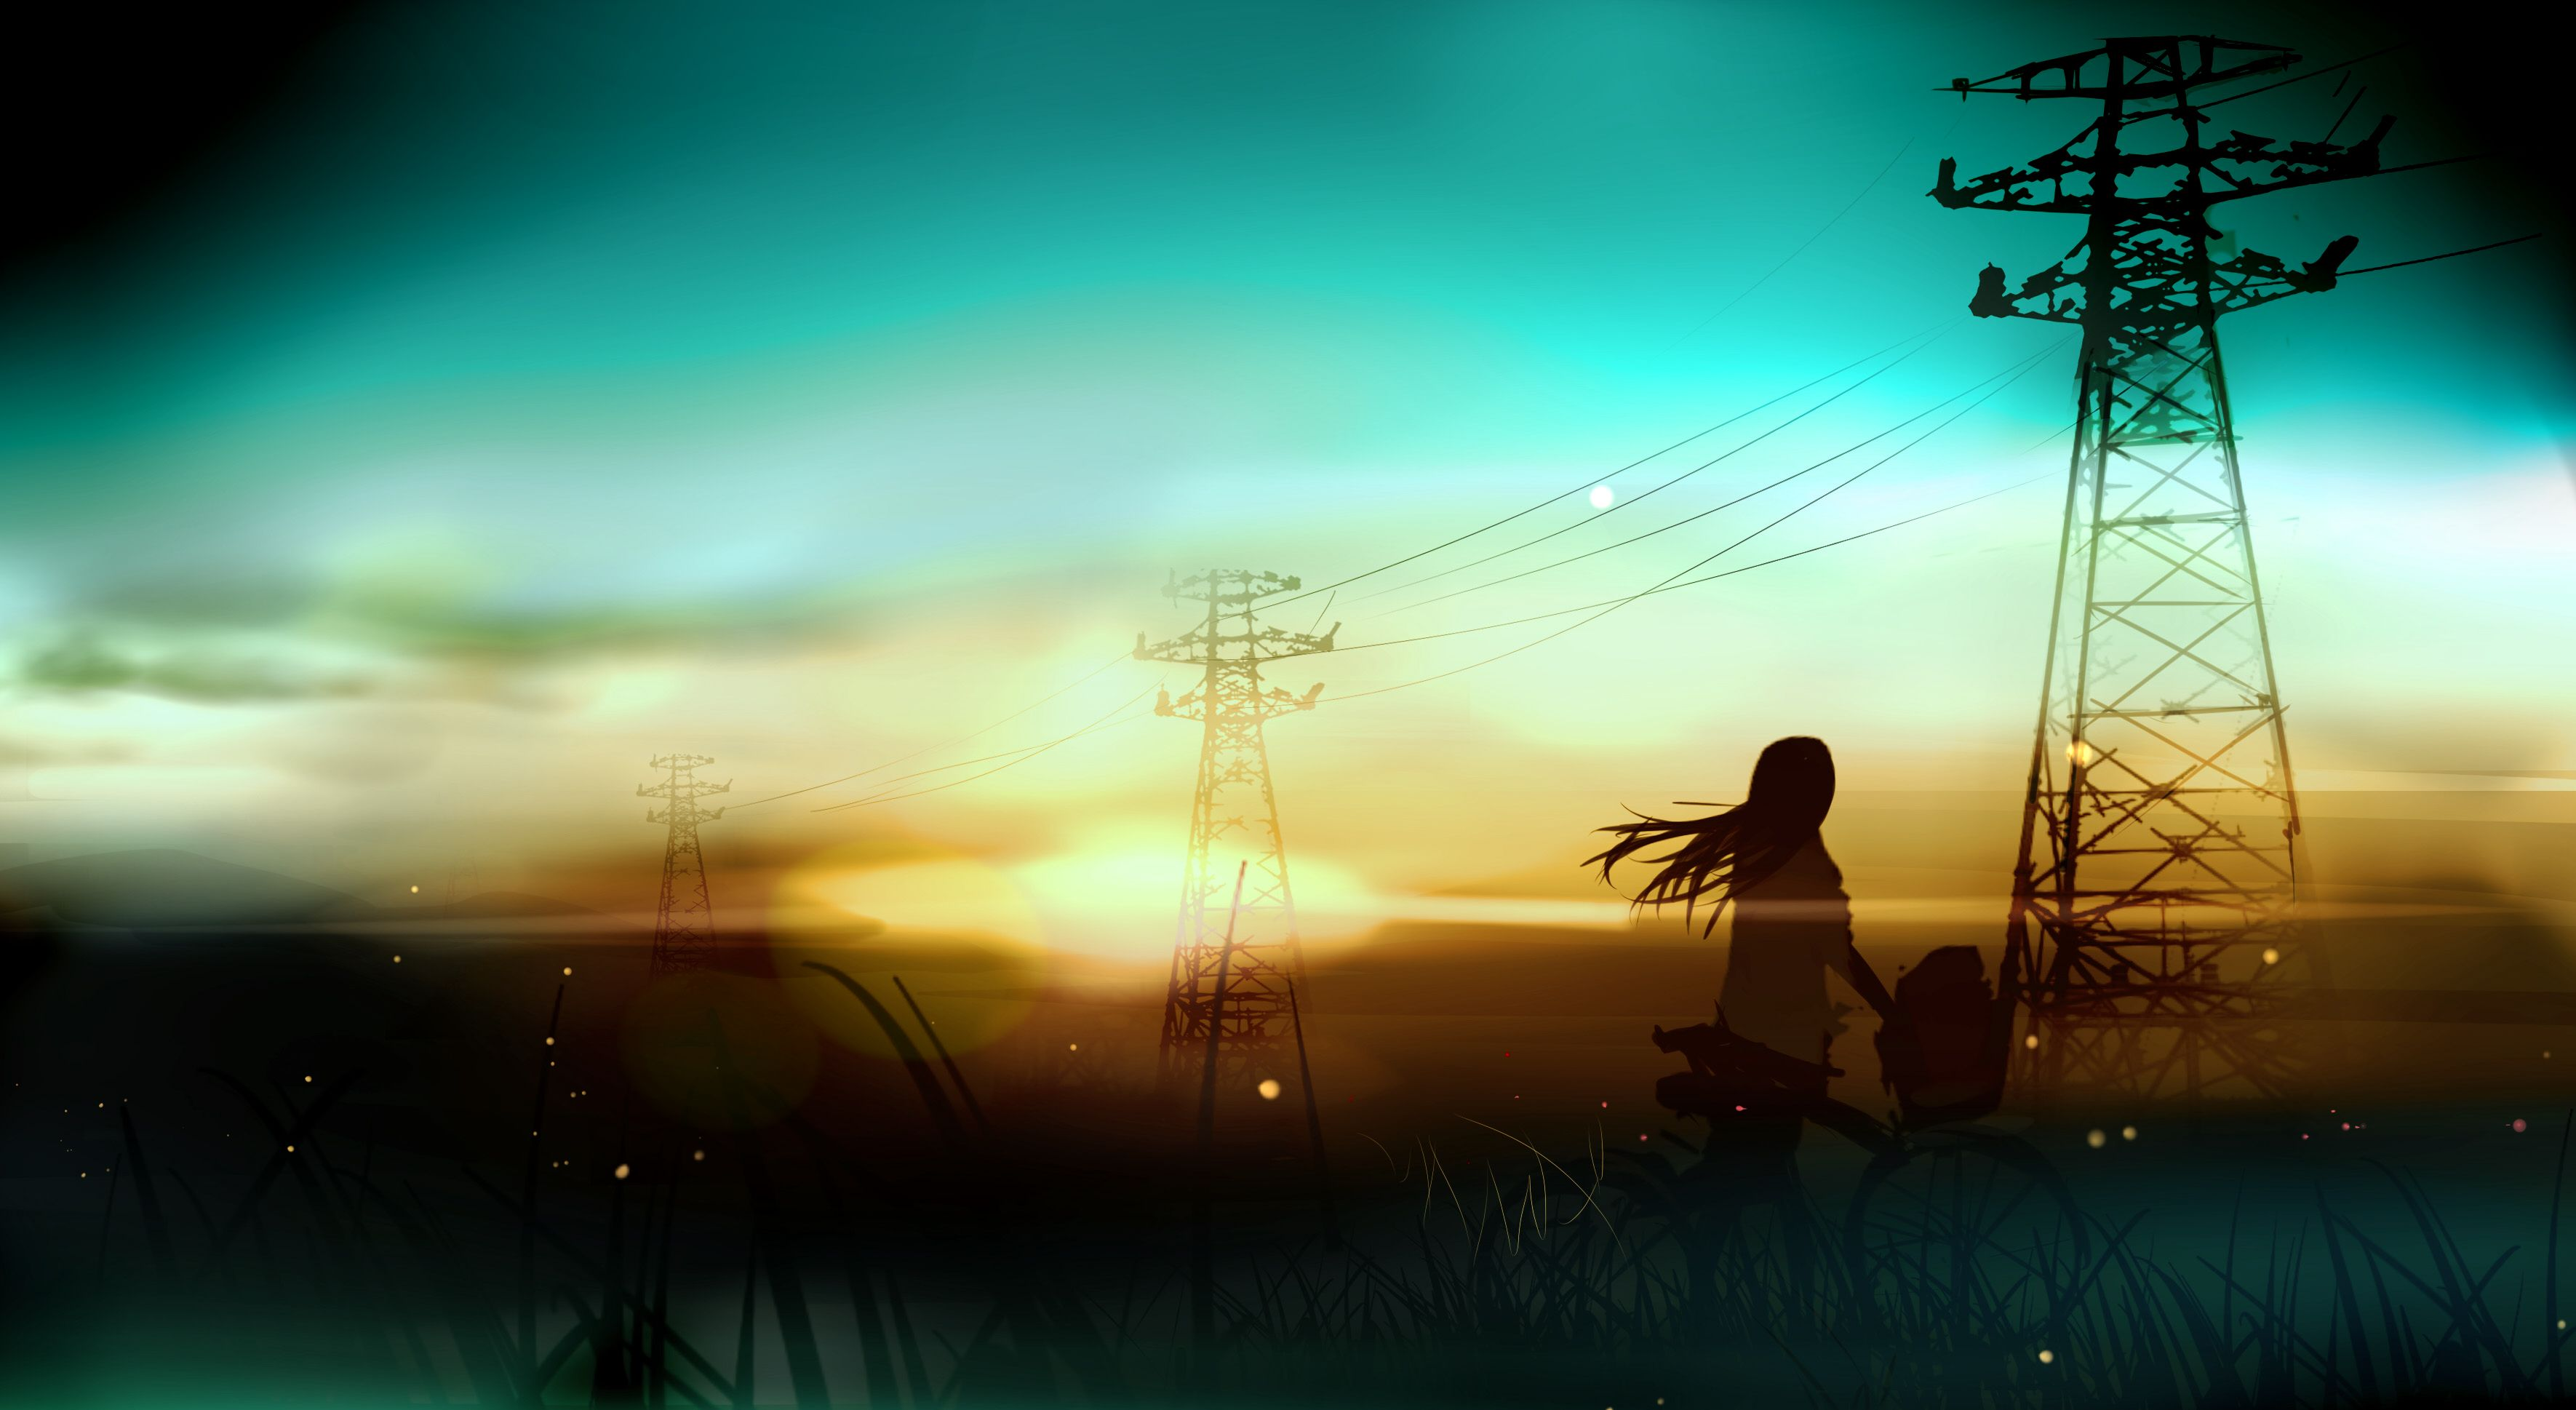 Sunset In The Fields イラスト 壁紙 メドレー